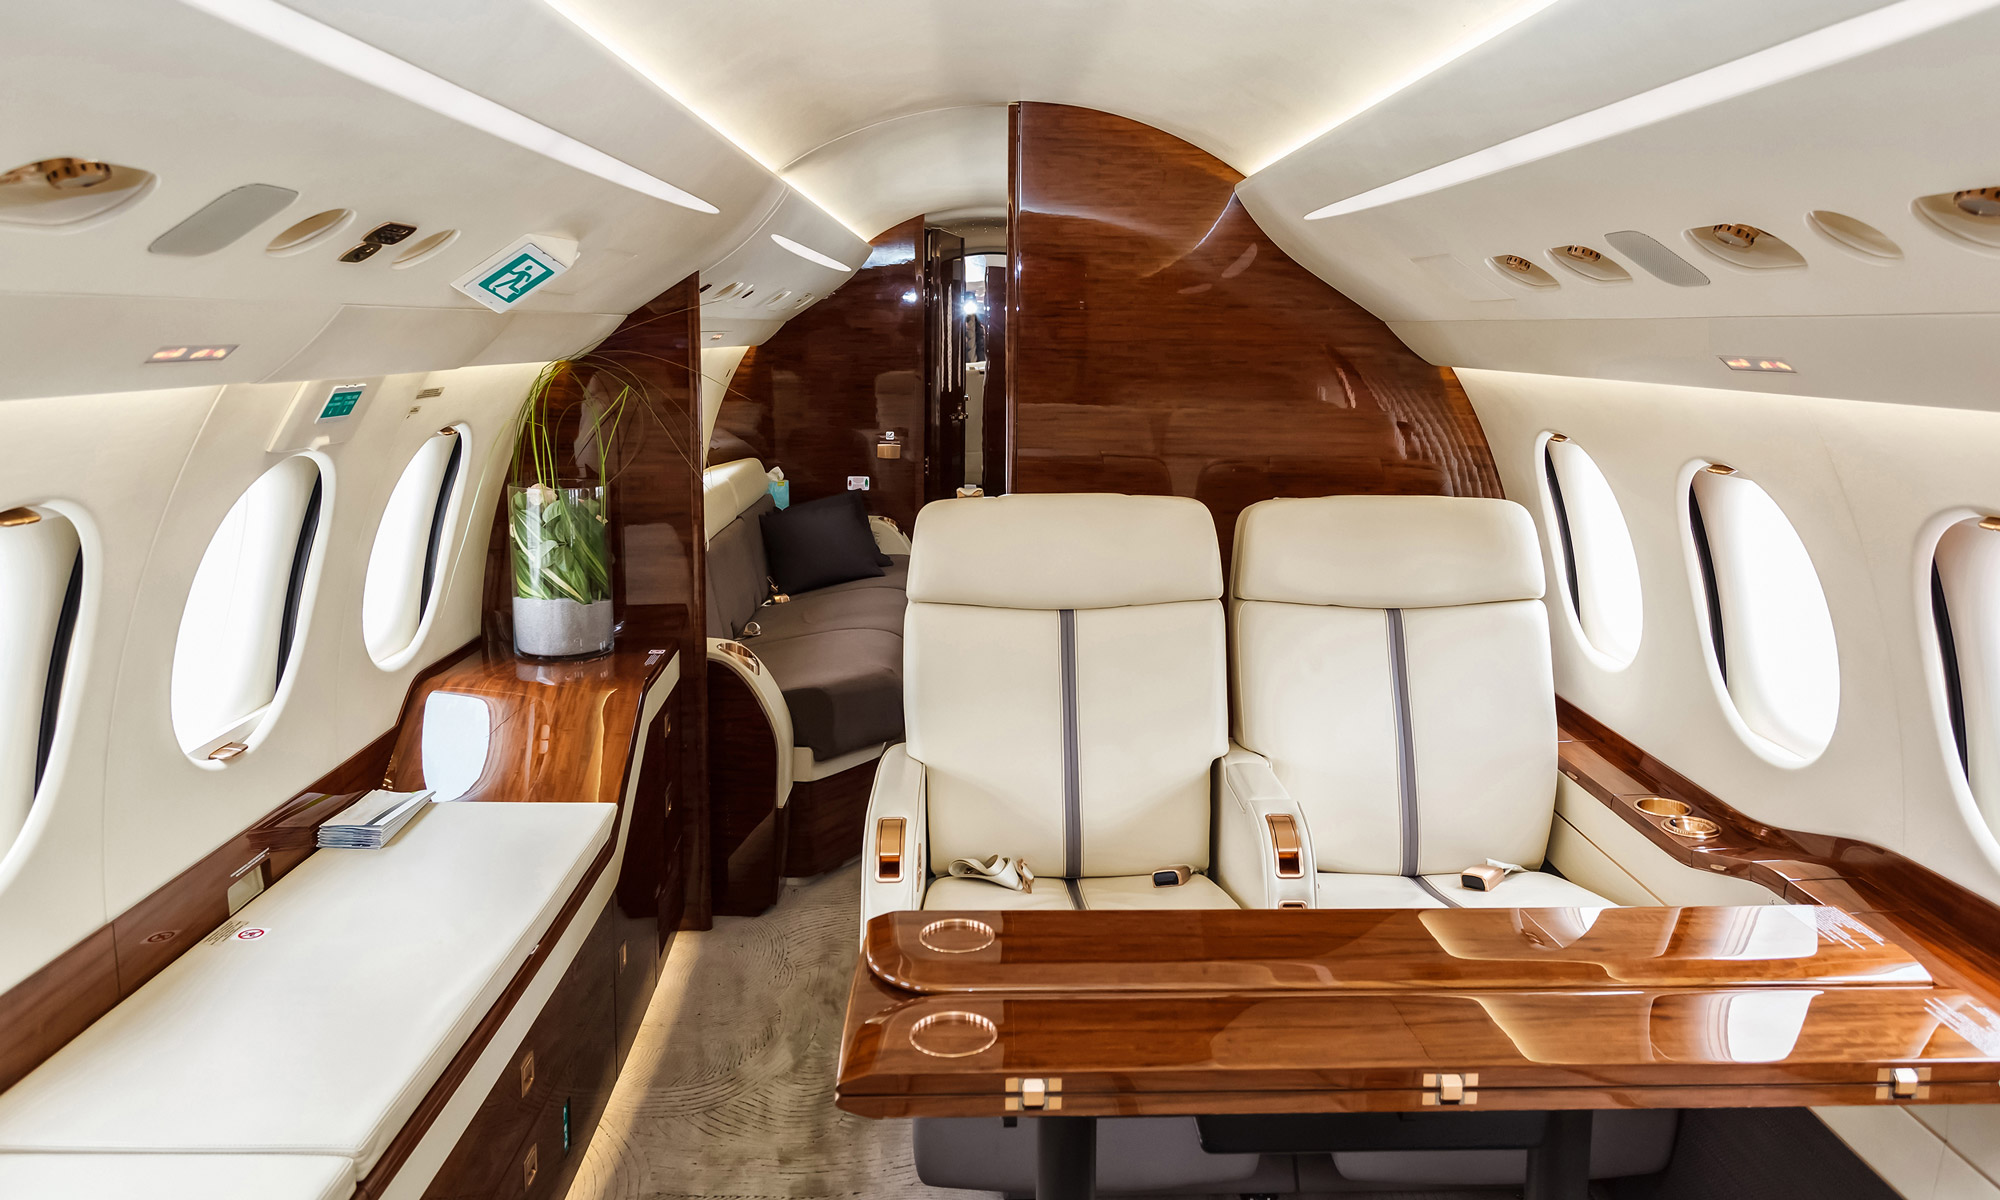 The Benefits of Business Travel via Private Charter